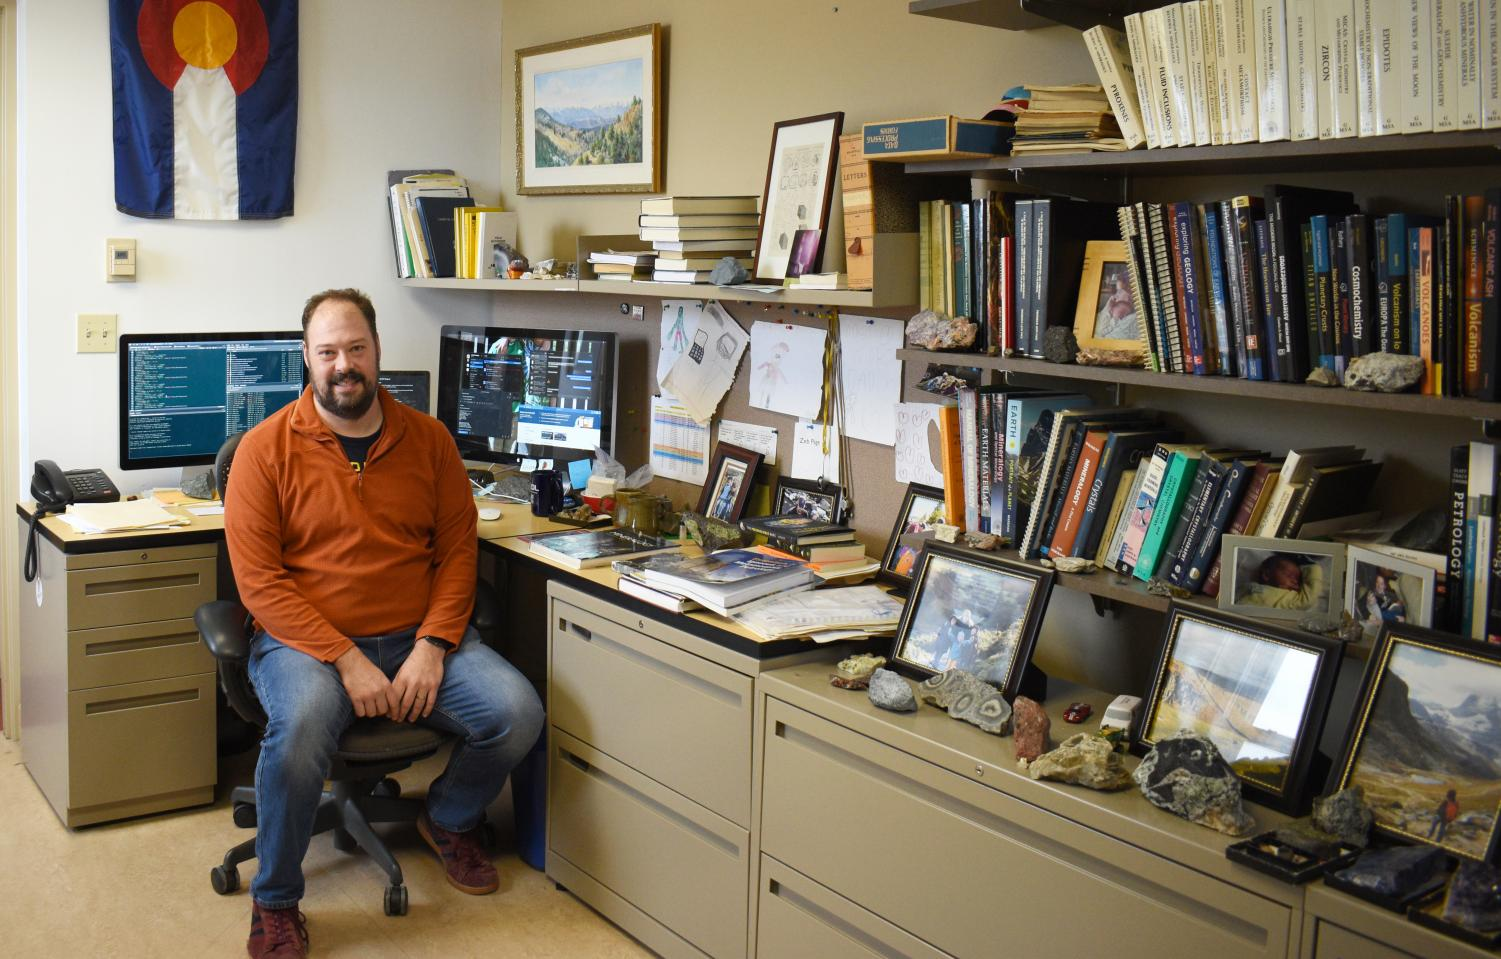 Associate Professor and Chair of Geology Zeb Page in his office. Page wrote a program to reconcile local student voting engagement numbers against data from the National Study of Learning, Voting, and Engagement.